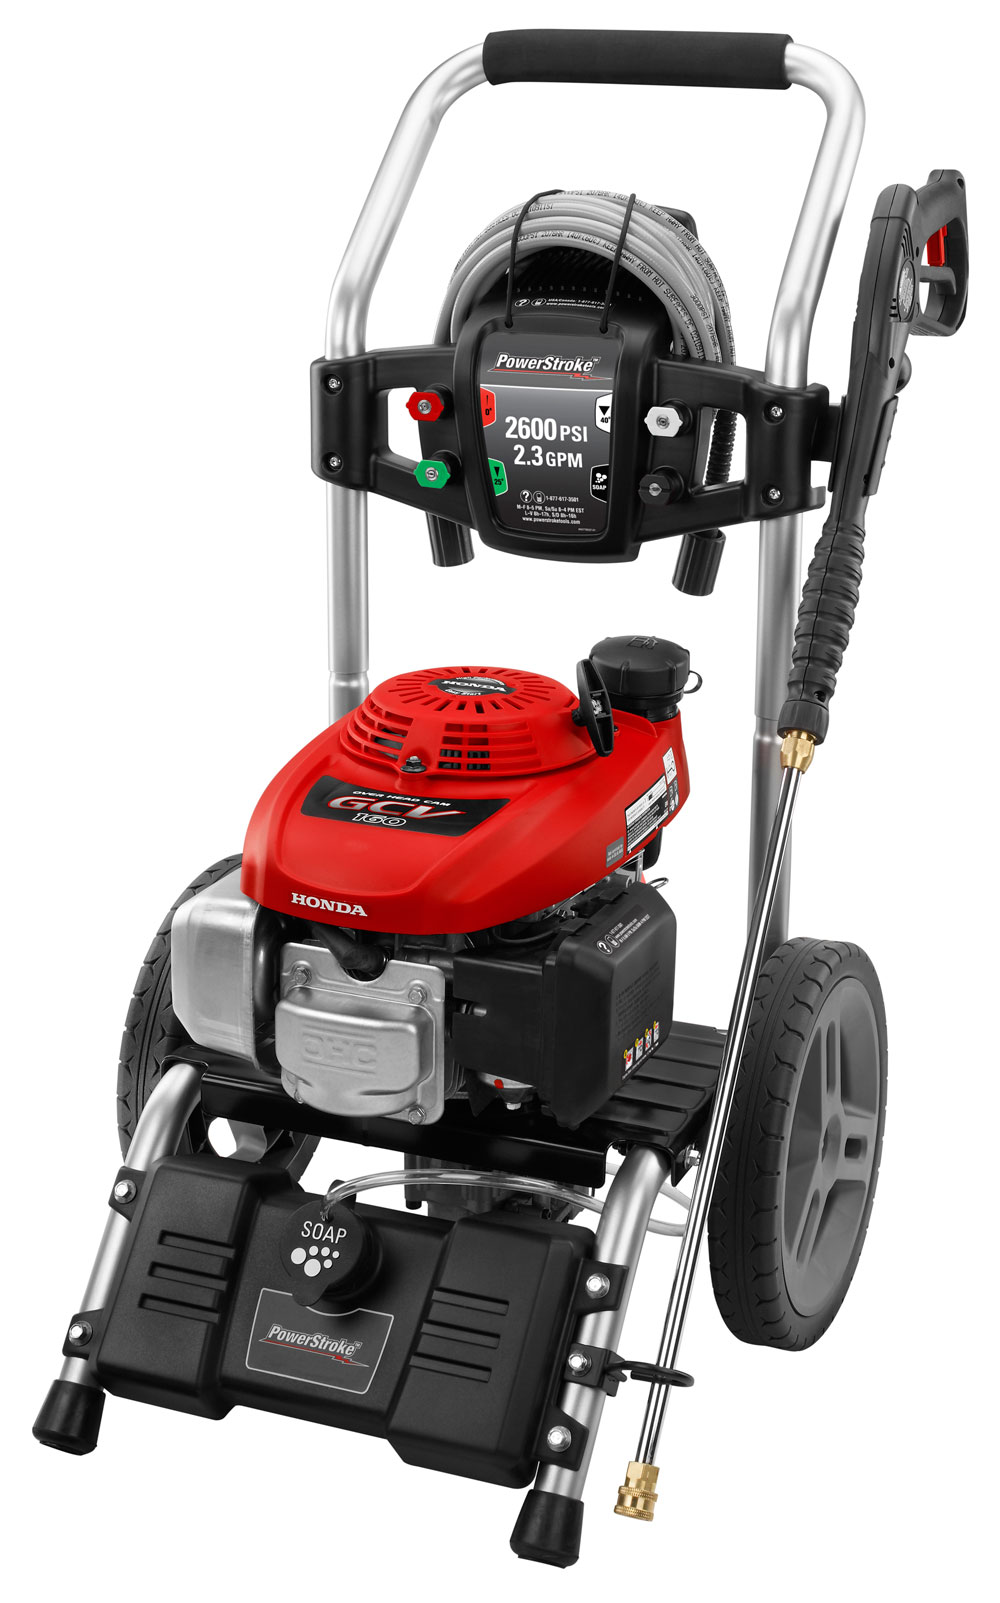 honda engines gcv160 4 stroke engine features specs and model info rh engines honda com Jonsered Lawn Mowers Self-Propelled Lawn Mowers